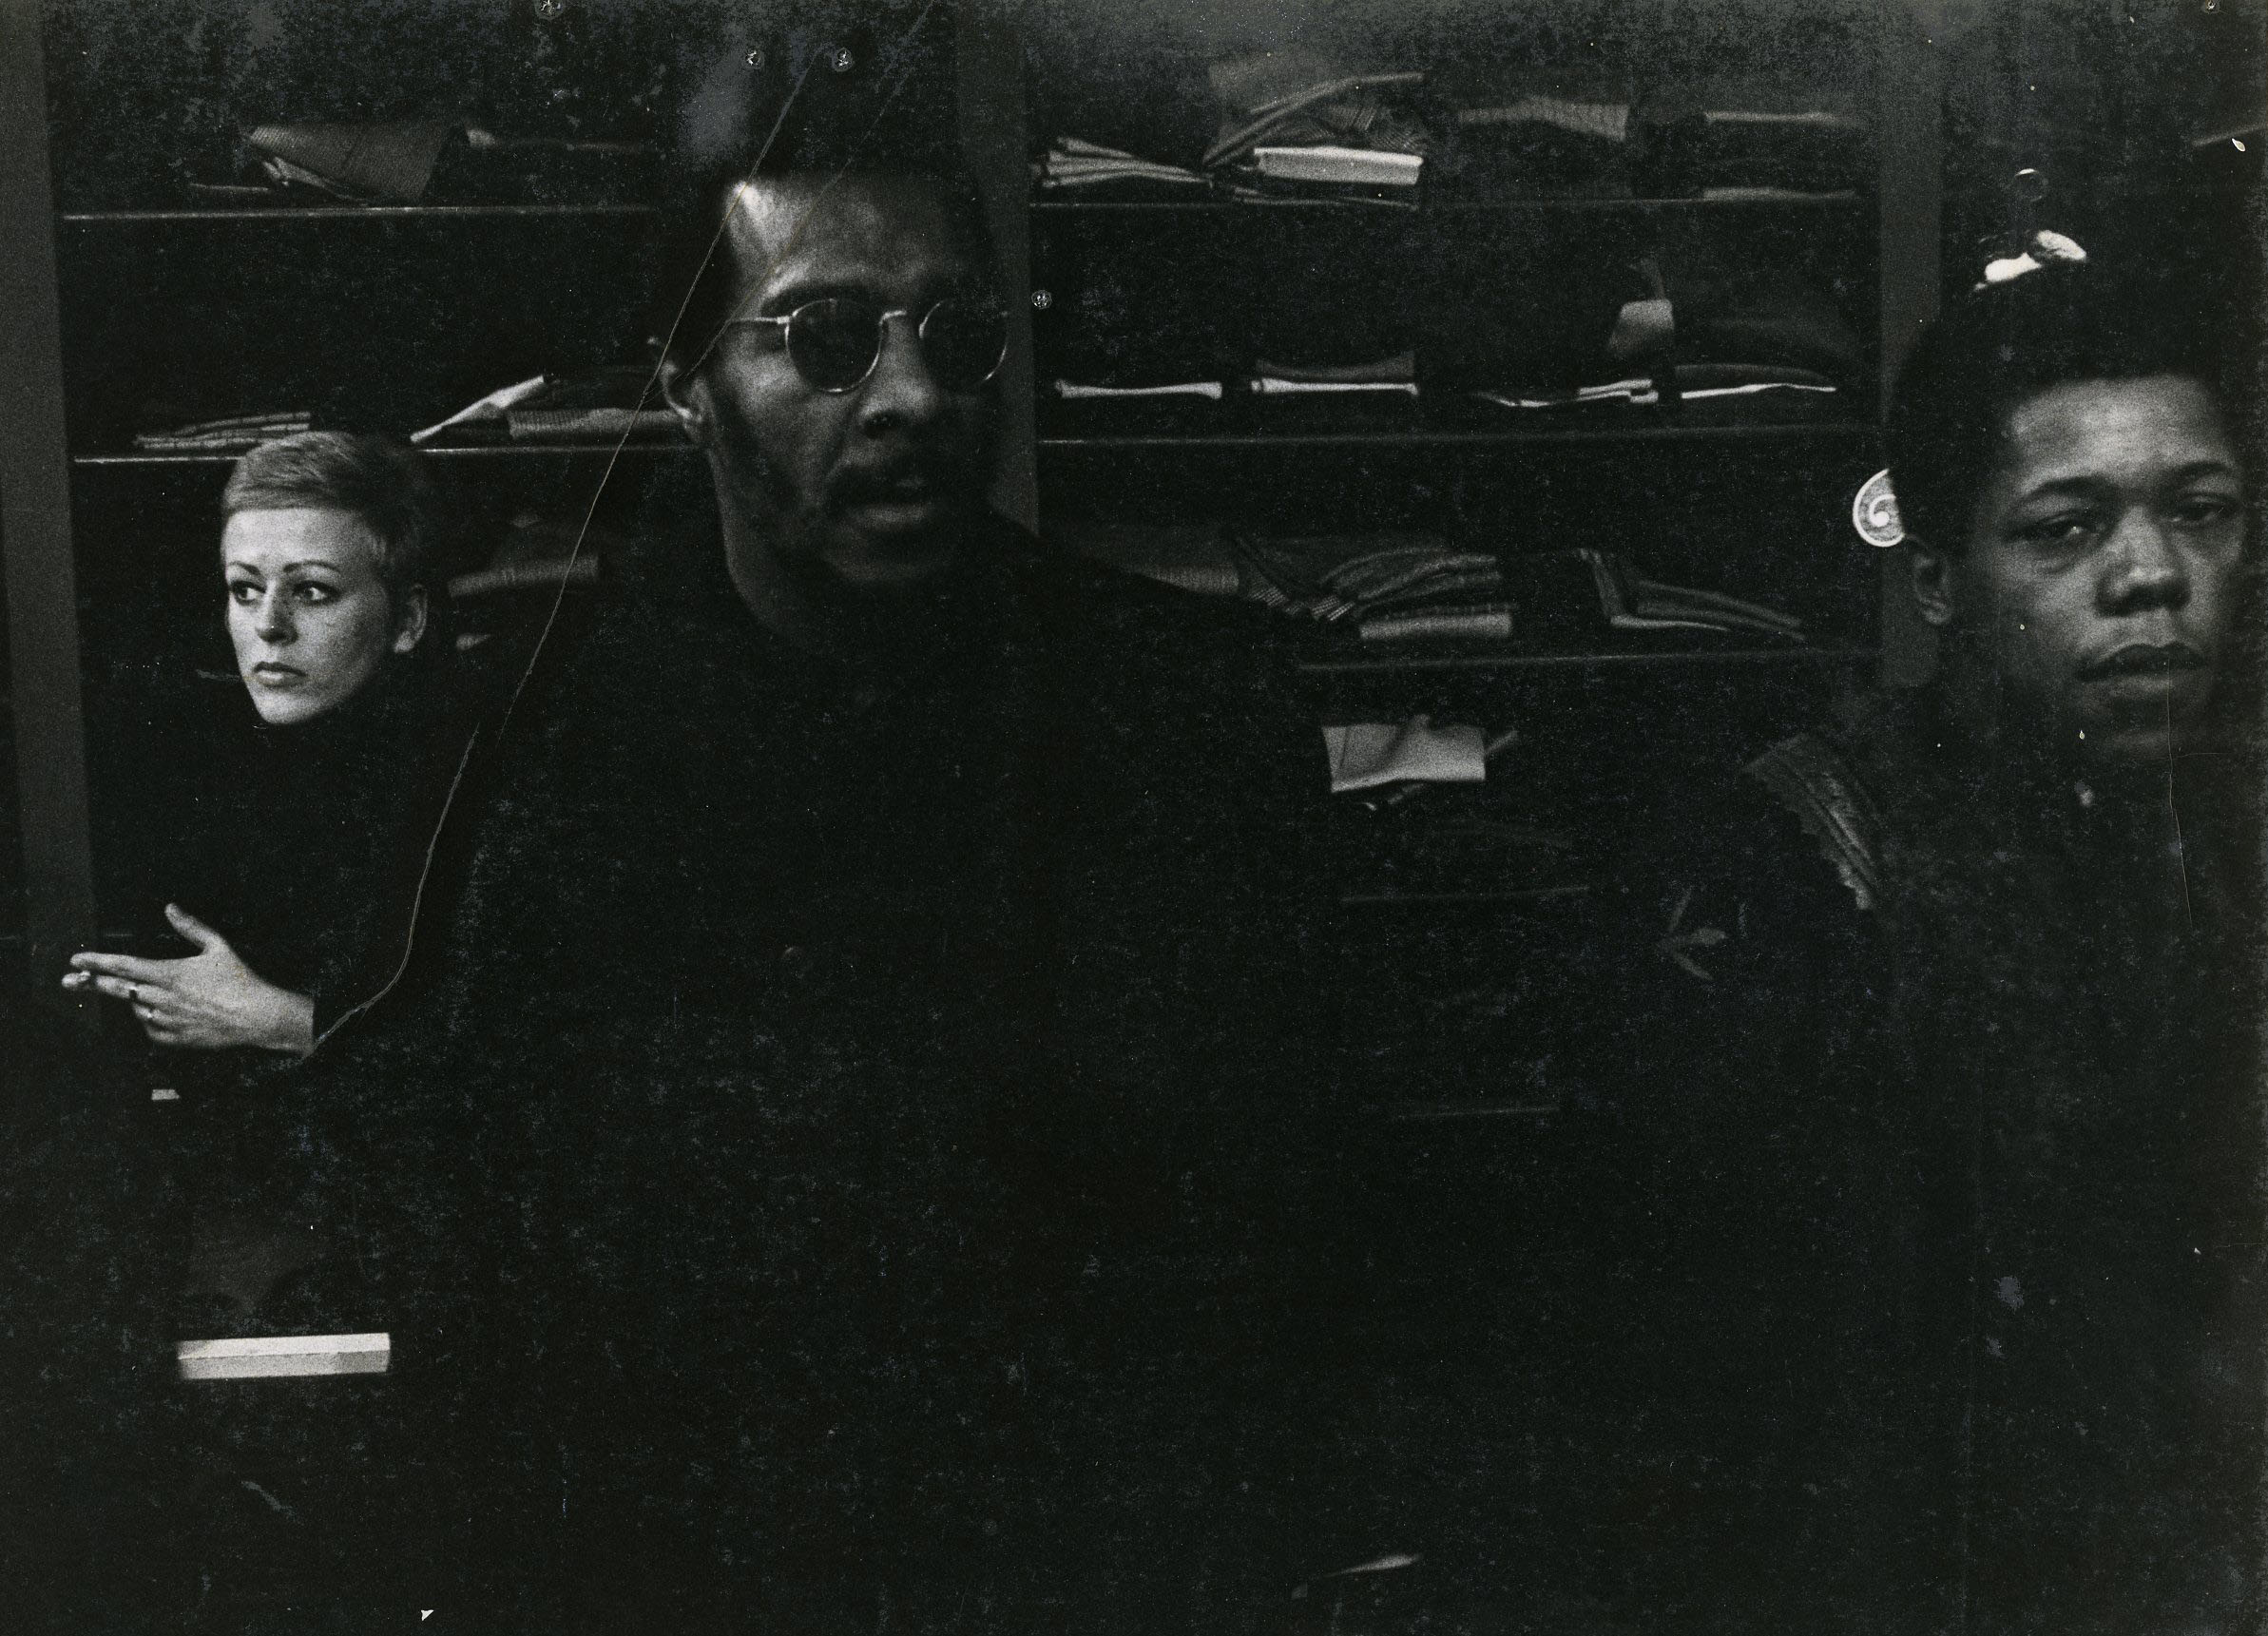 Image of Richie Havens at Krackerjacks, ca. 1968